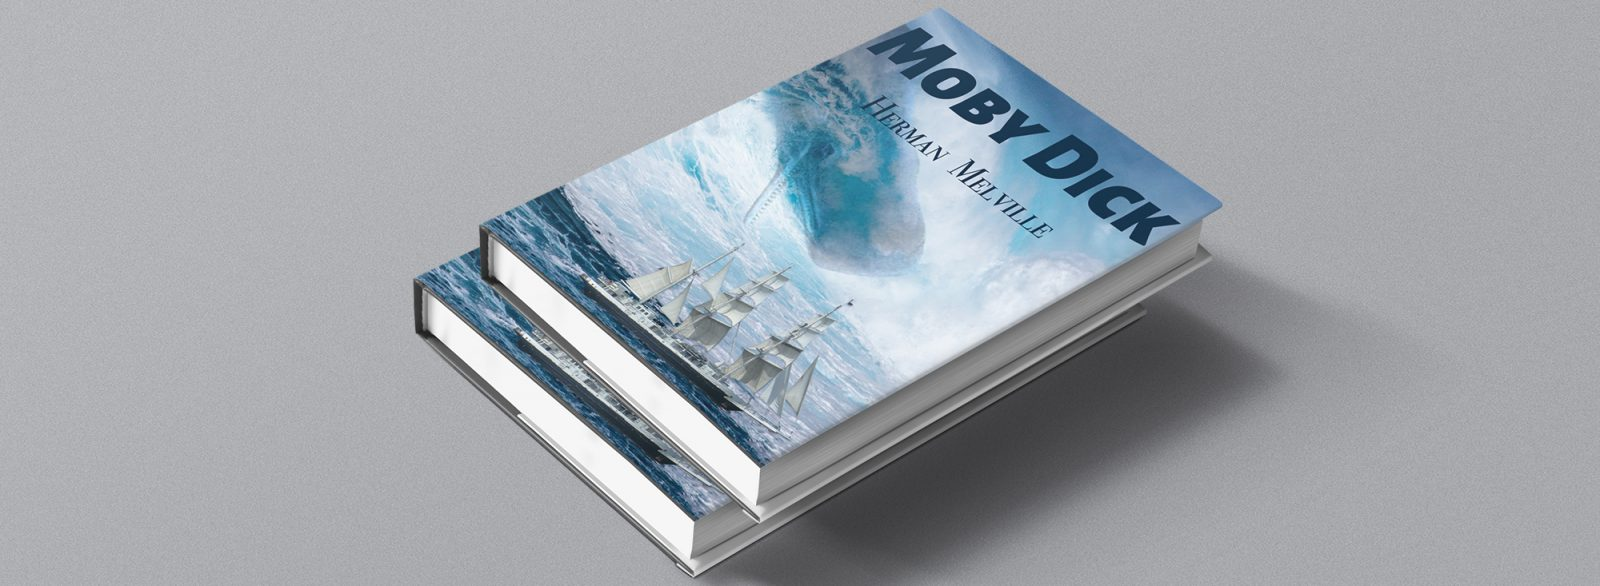 Moby Dick Book Cover